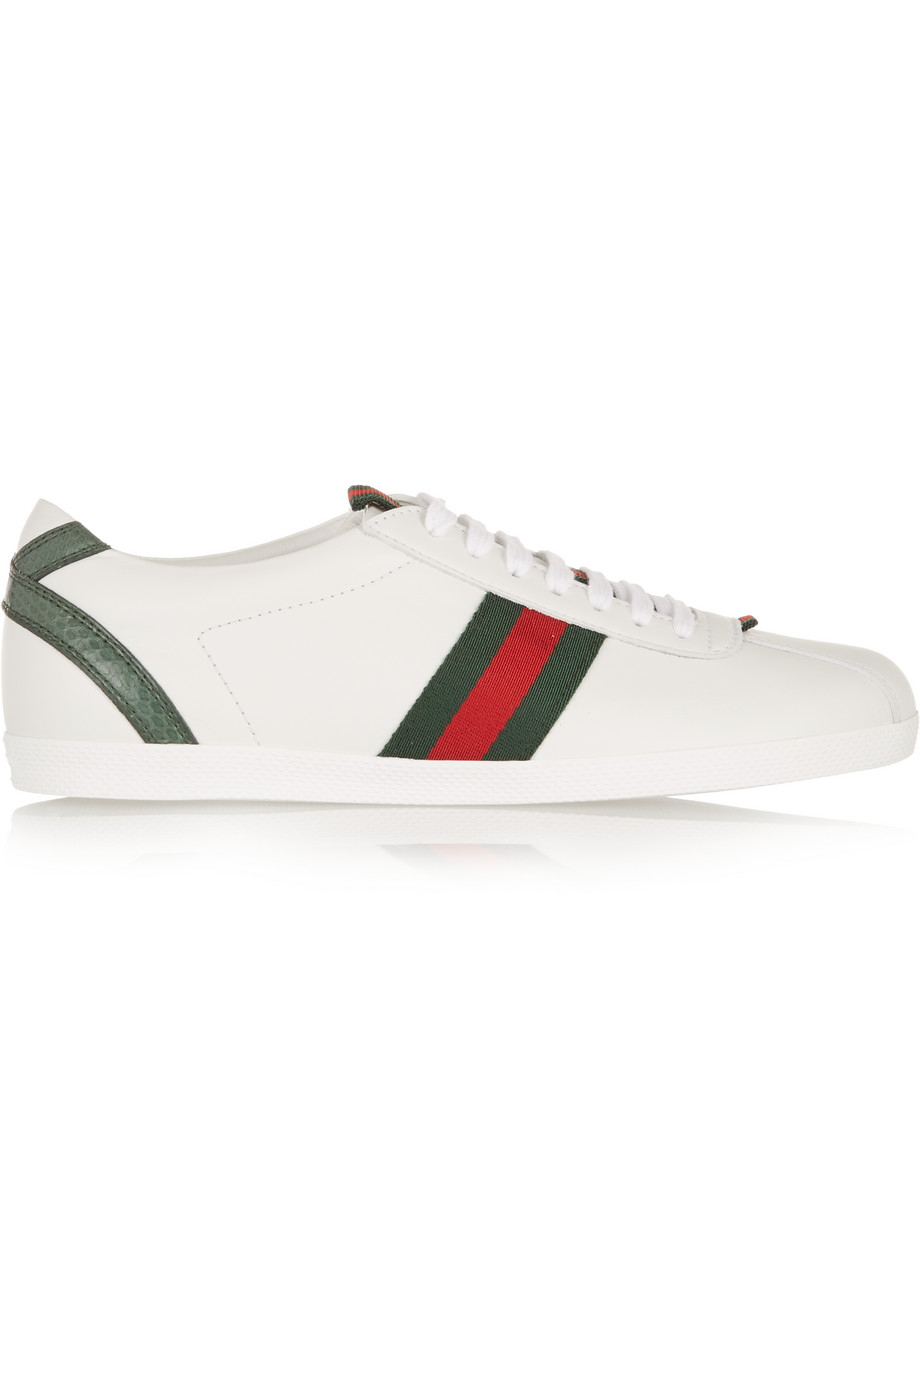 Gucci New Ace Watersnake-Trimmed Leather Sneakers, White, Women's US Size: 7.5, Size: 38